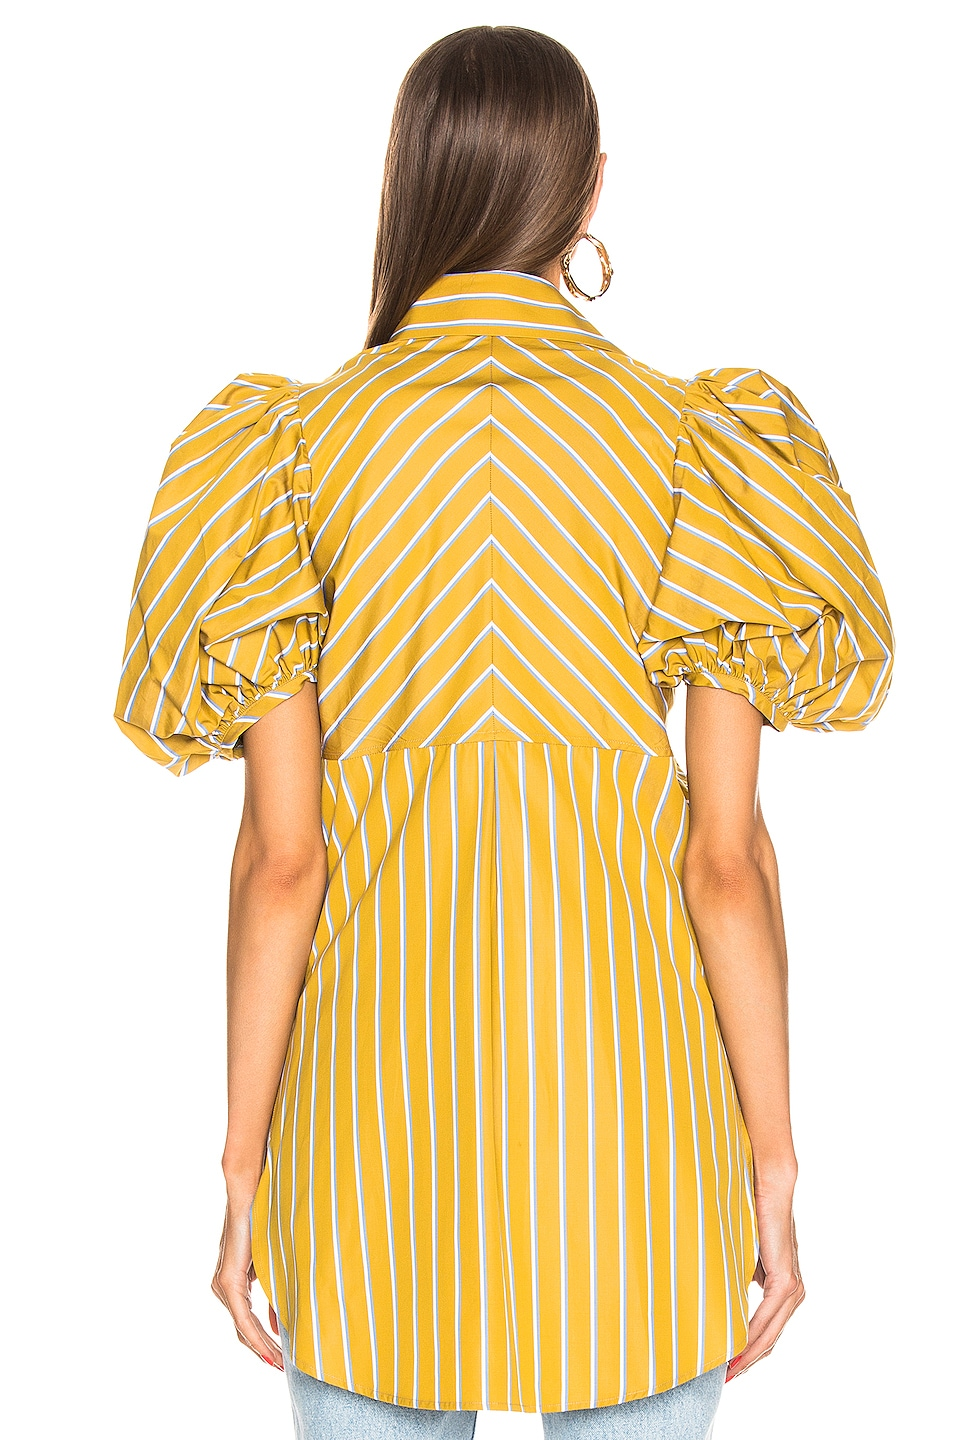 Image 4 of SILVIA TCHERASSI Primula Blouse in Lemon Stripes